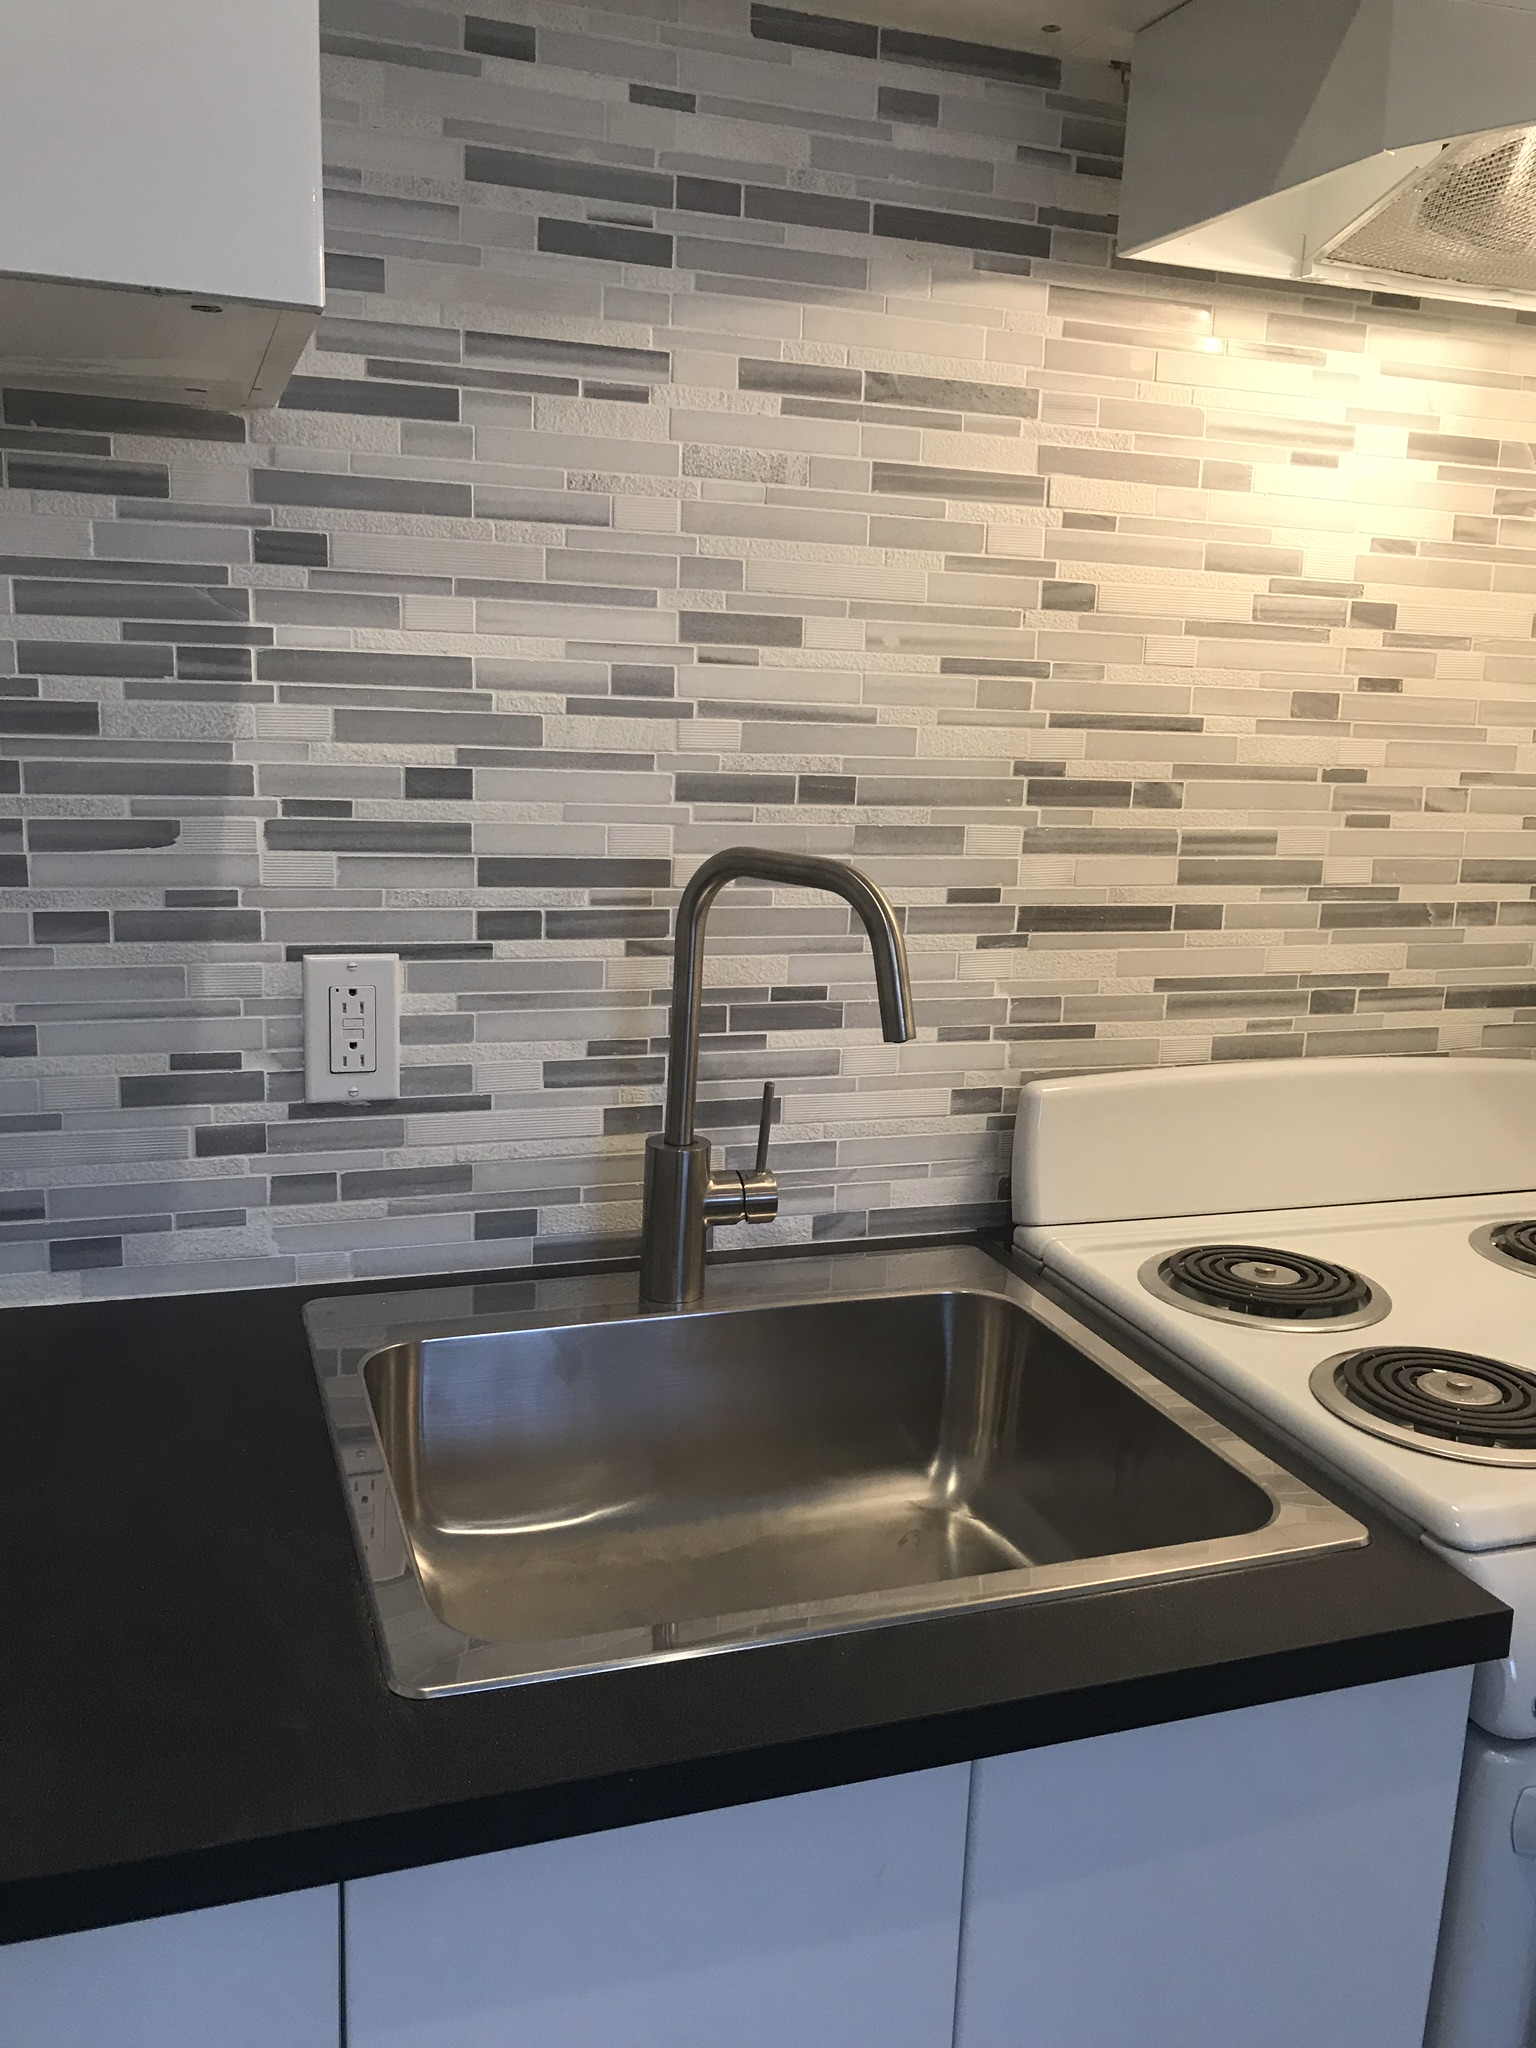 Studio / Bachelor Apartments for rent in Outremont at 1310-1314 Lajoie - Photo 06 - RentersPages – L209579